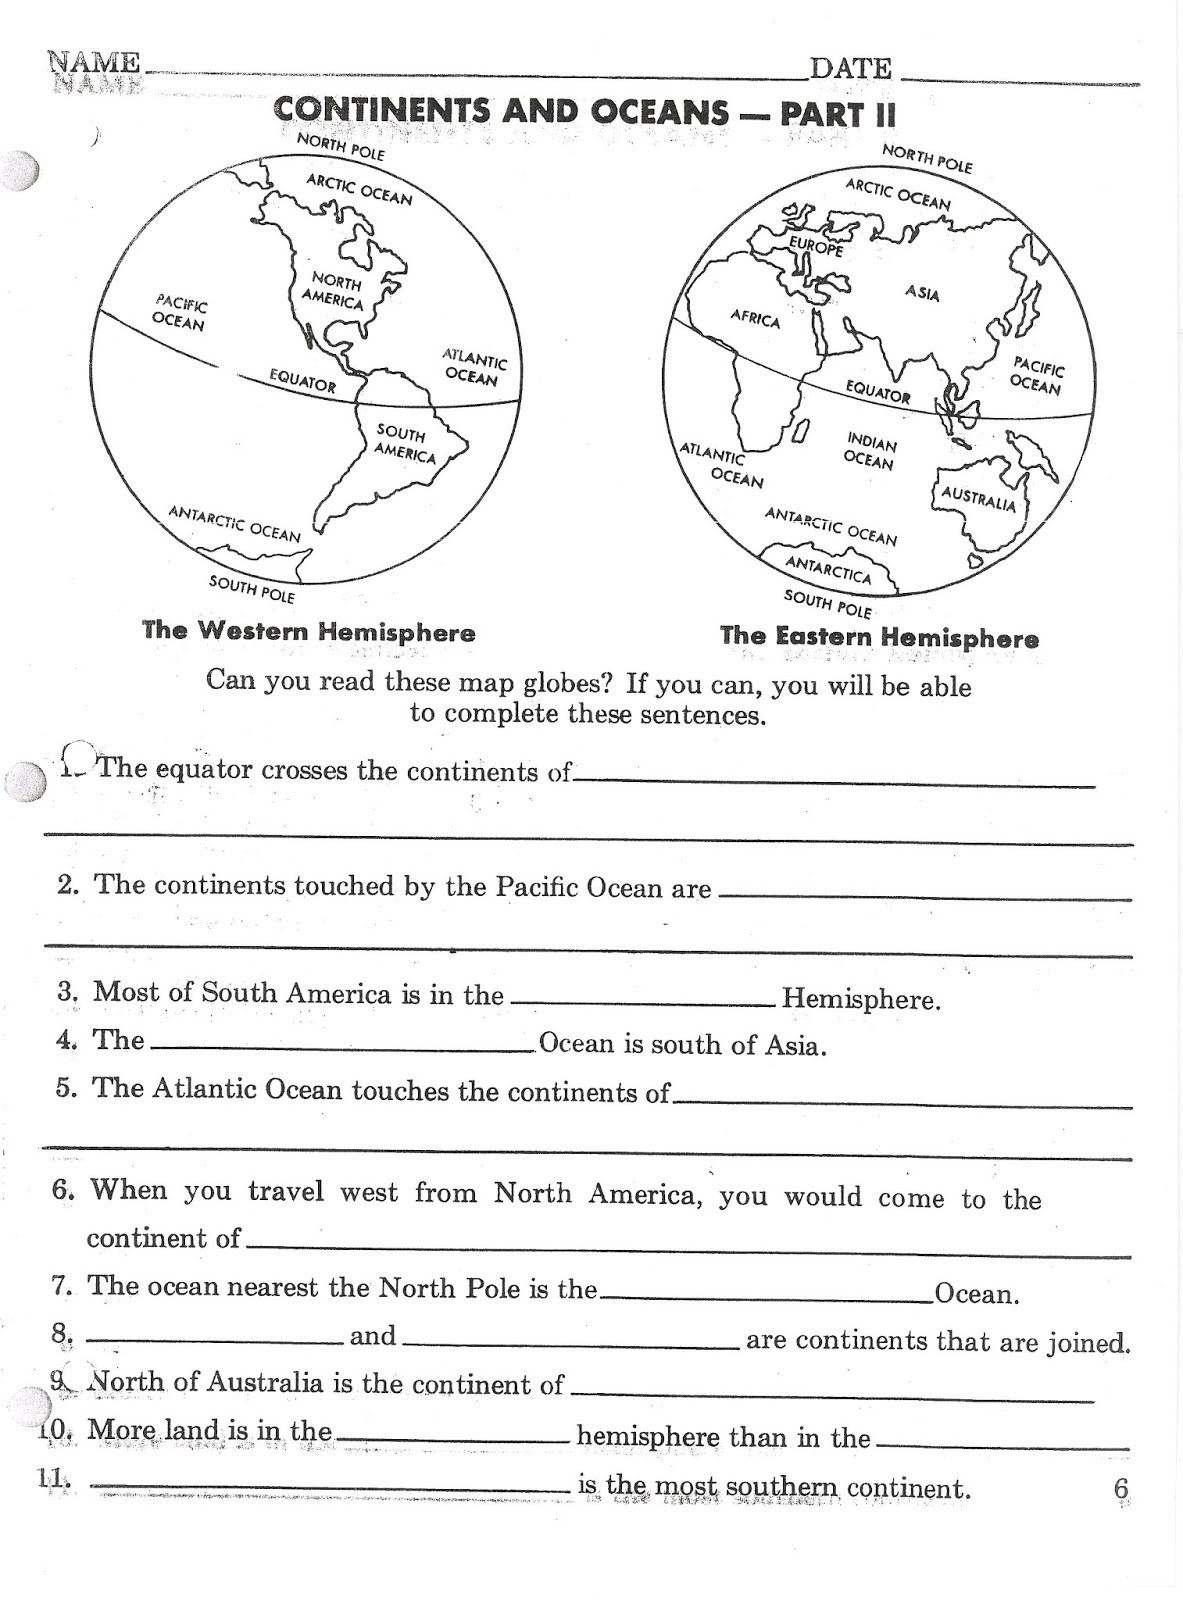 Oceans and Continents Worksheets Printable Super Teacher Worksheets Continents